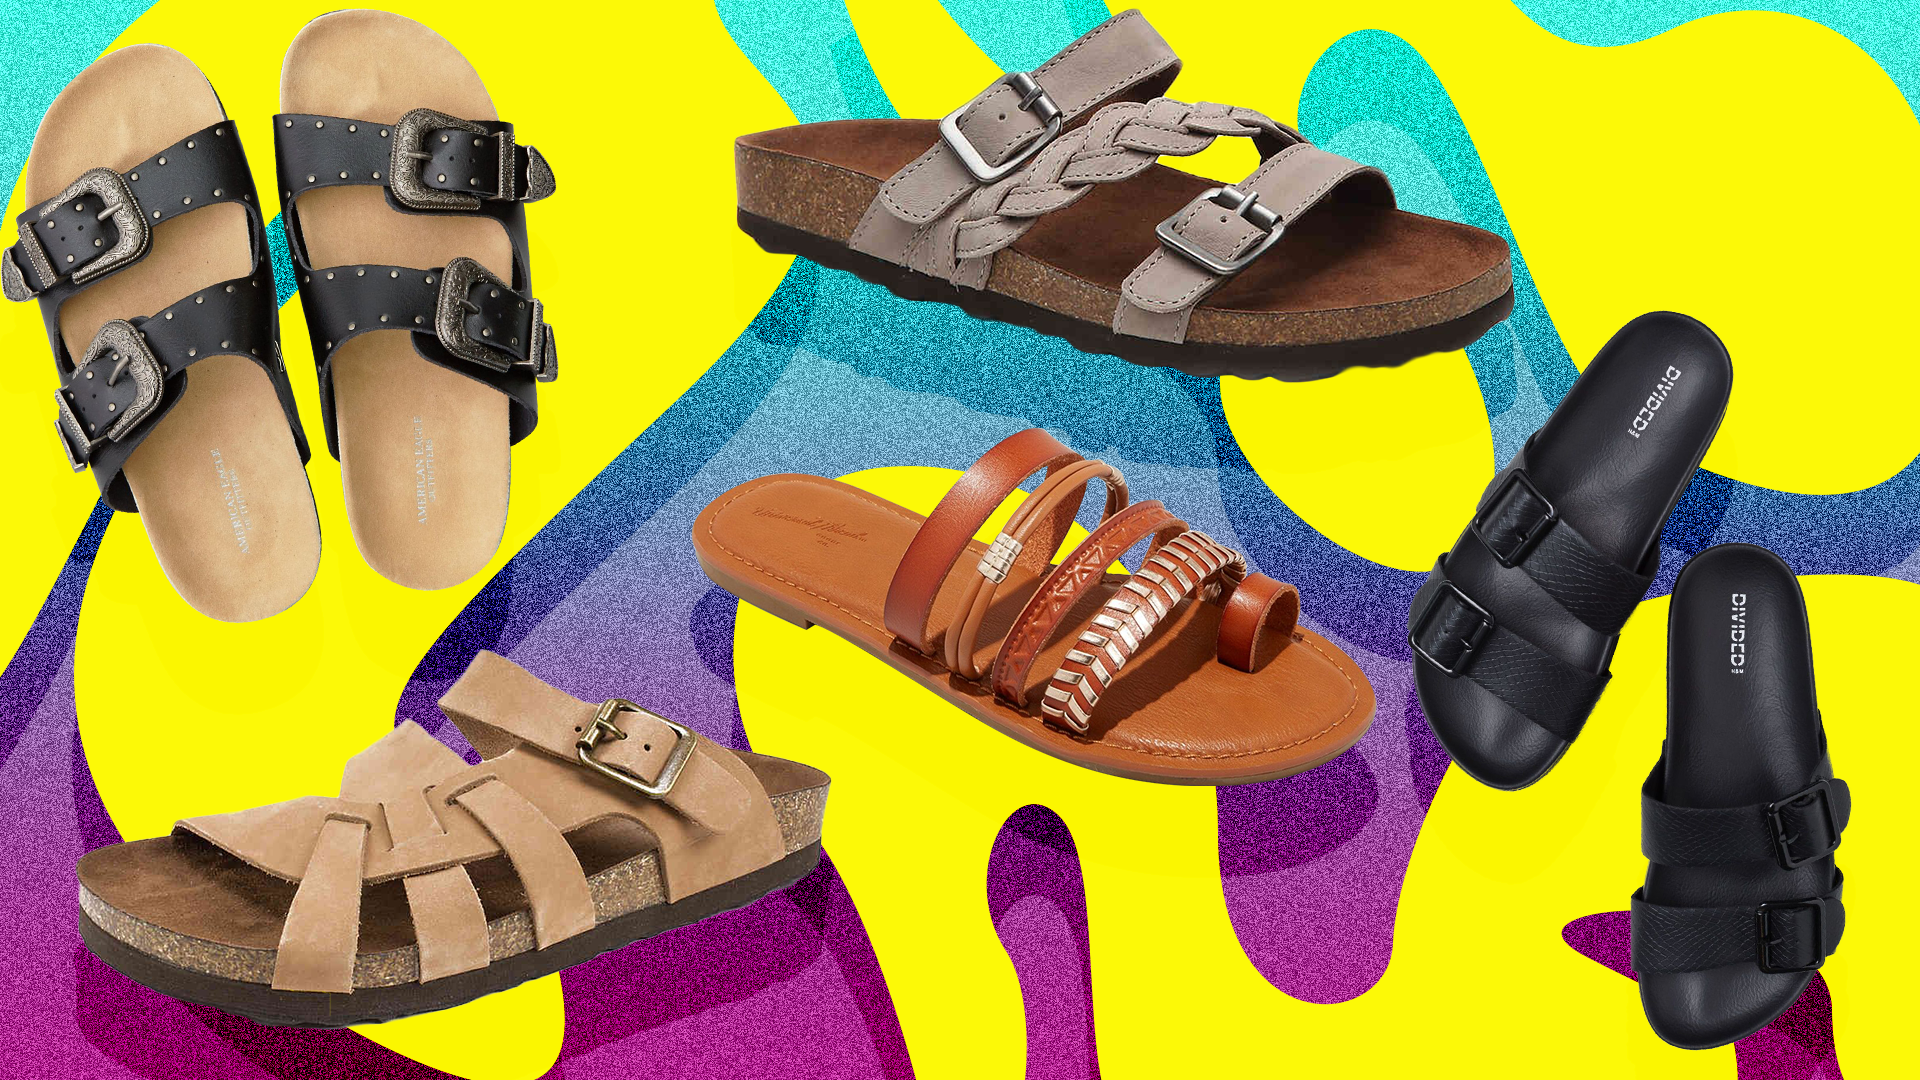 762acd1cd 16 Birkenstock Look-Alikes You Can Actually Afford – SheKnows